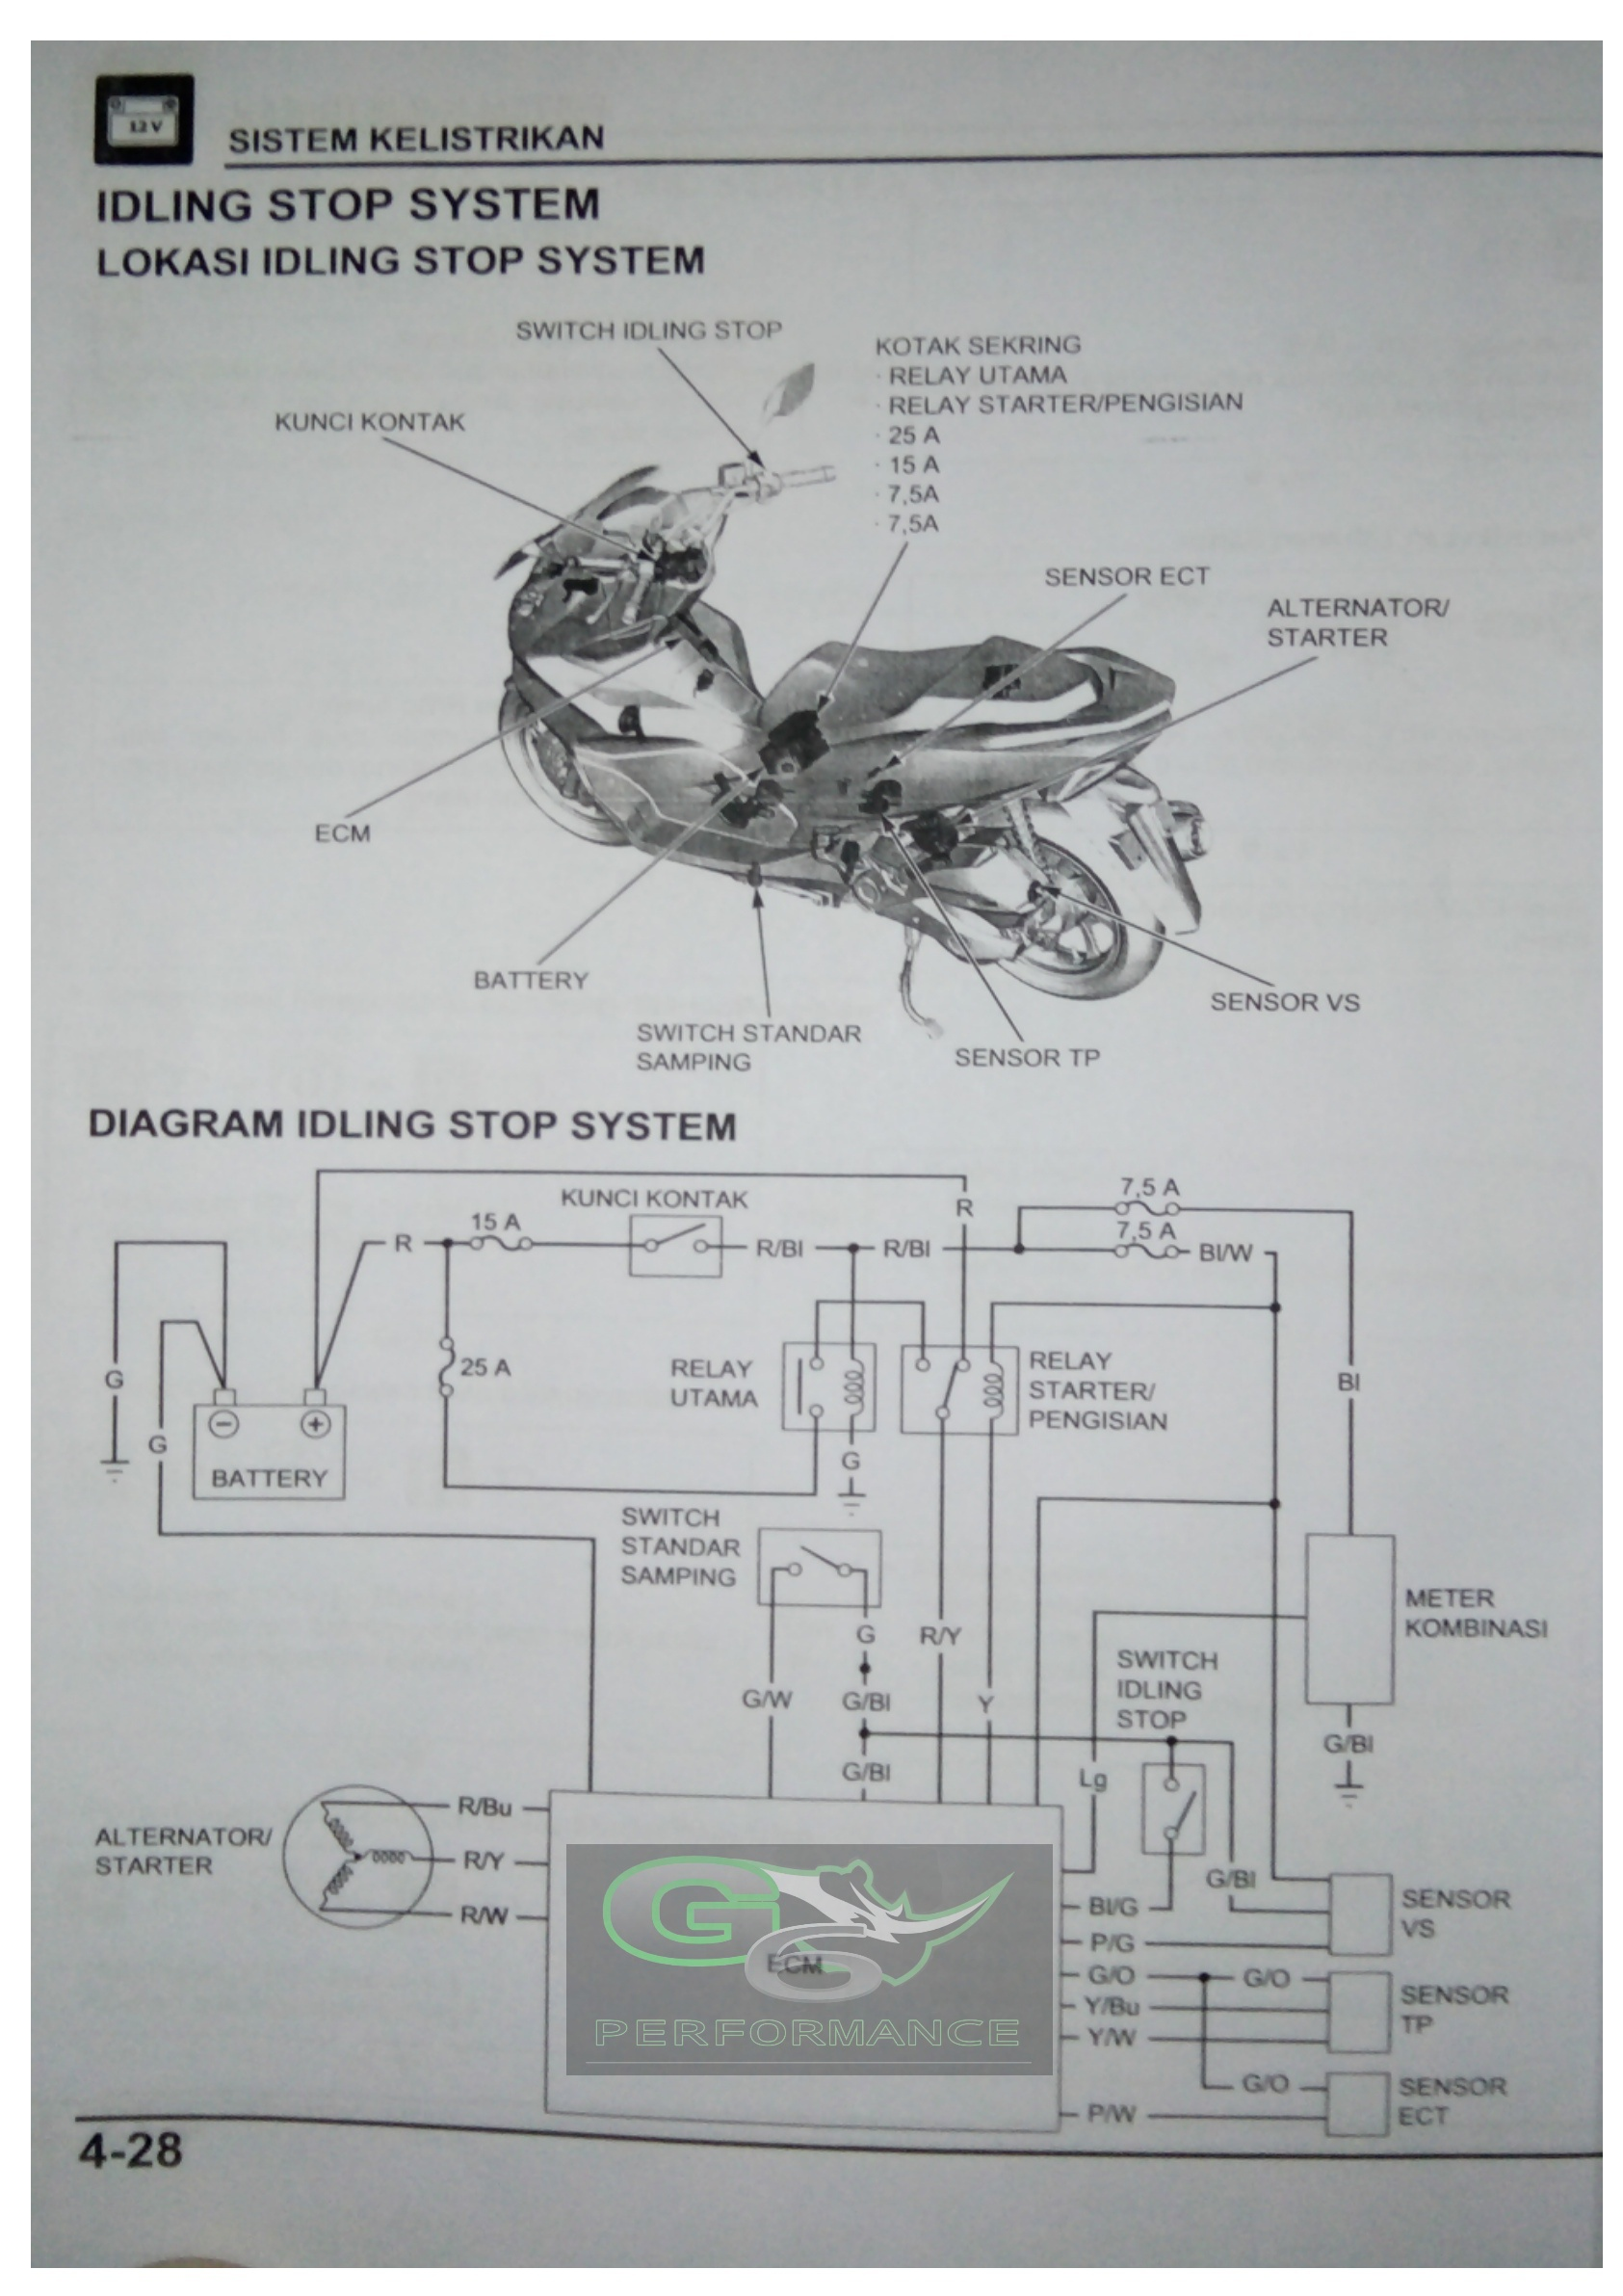 hight resolution of electric wiring system diagram honda new pcx 150 2018 gisix s blog honda pcx 150 wiring diagram wiring diagram honda pcx